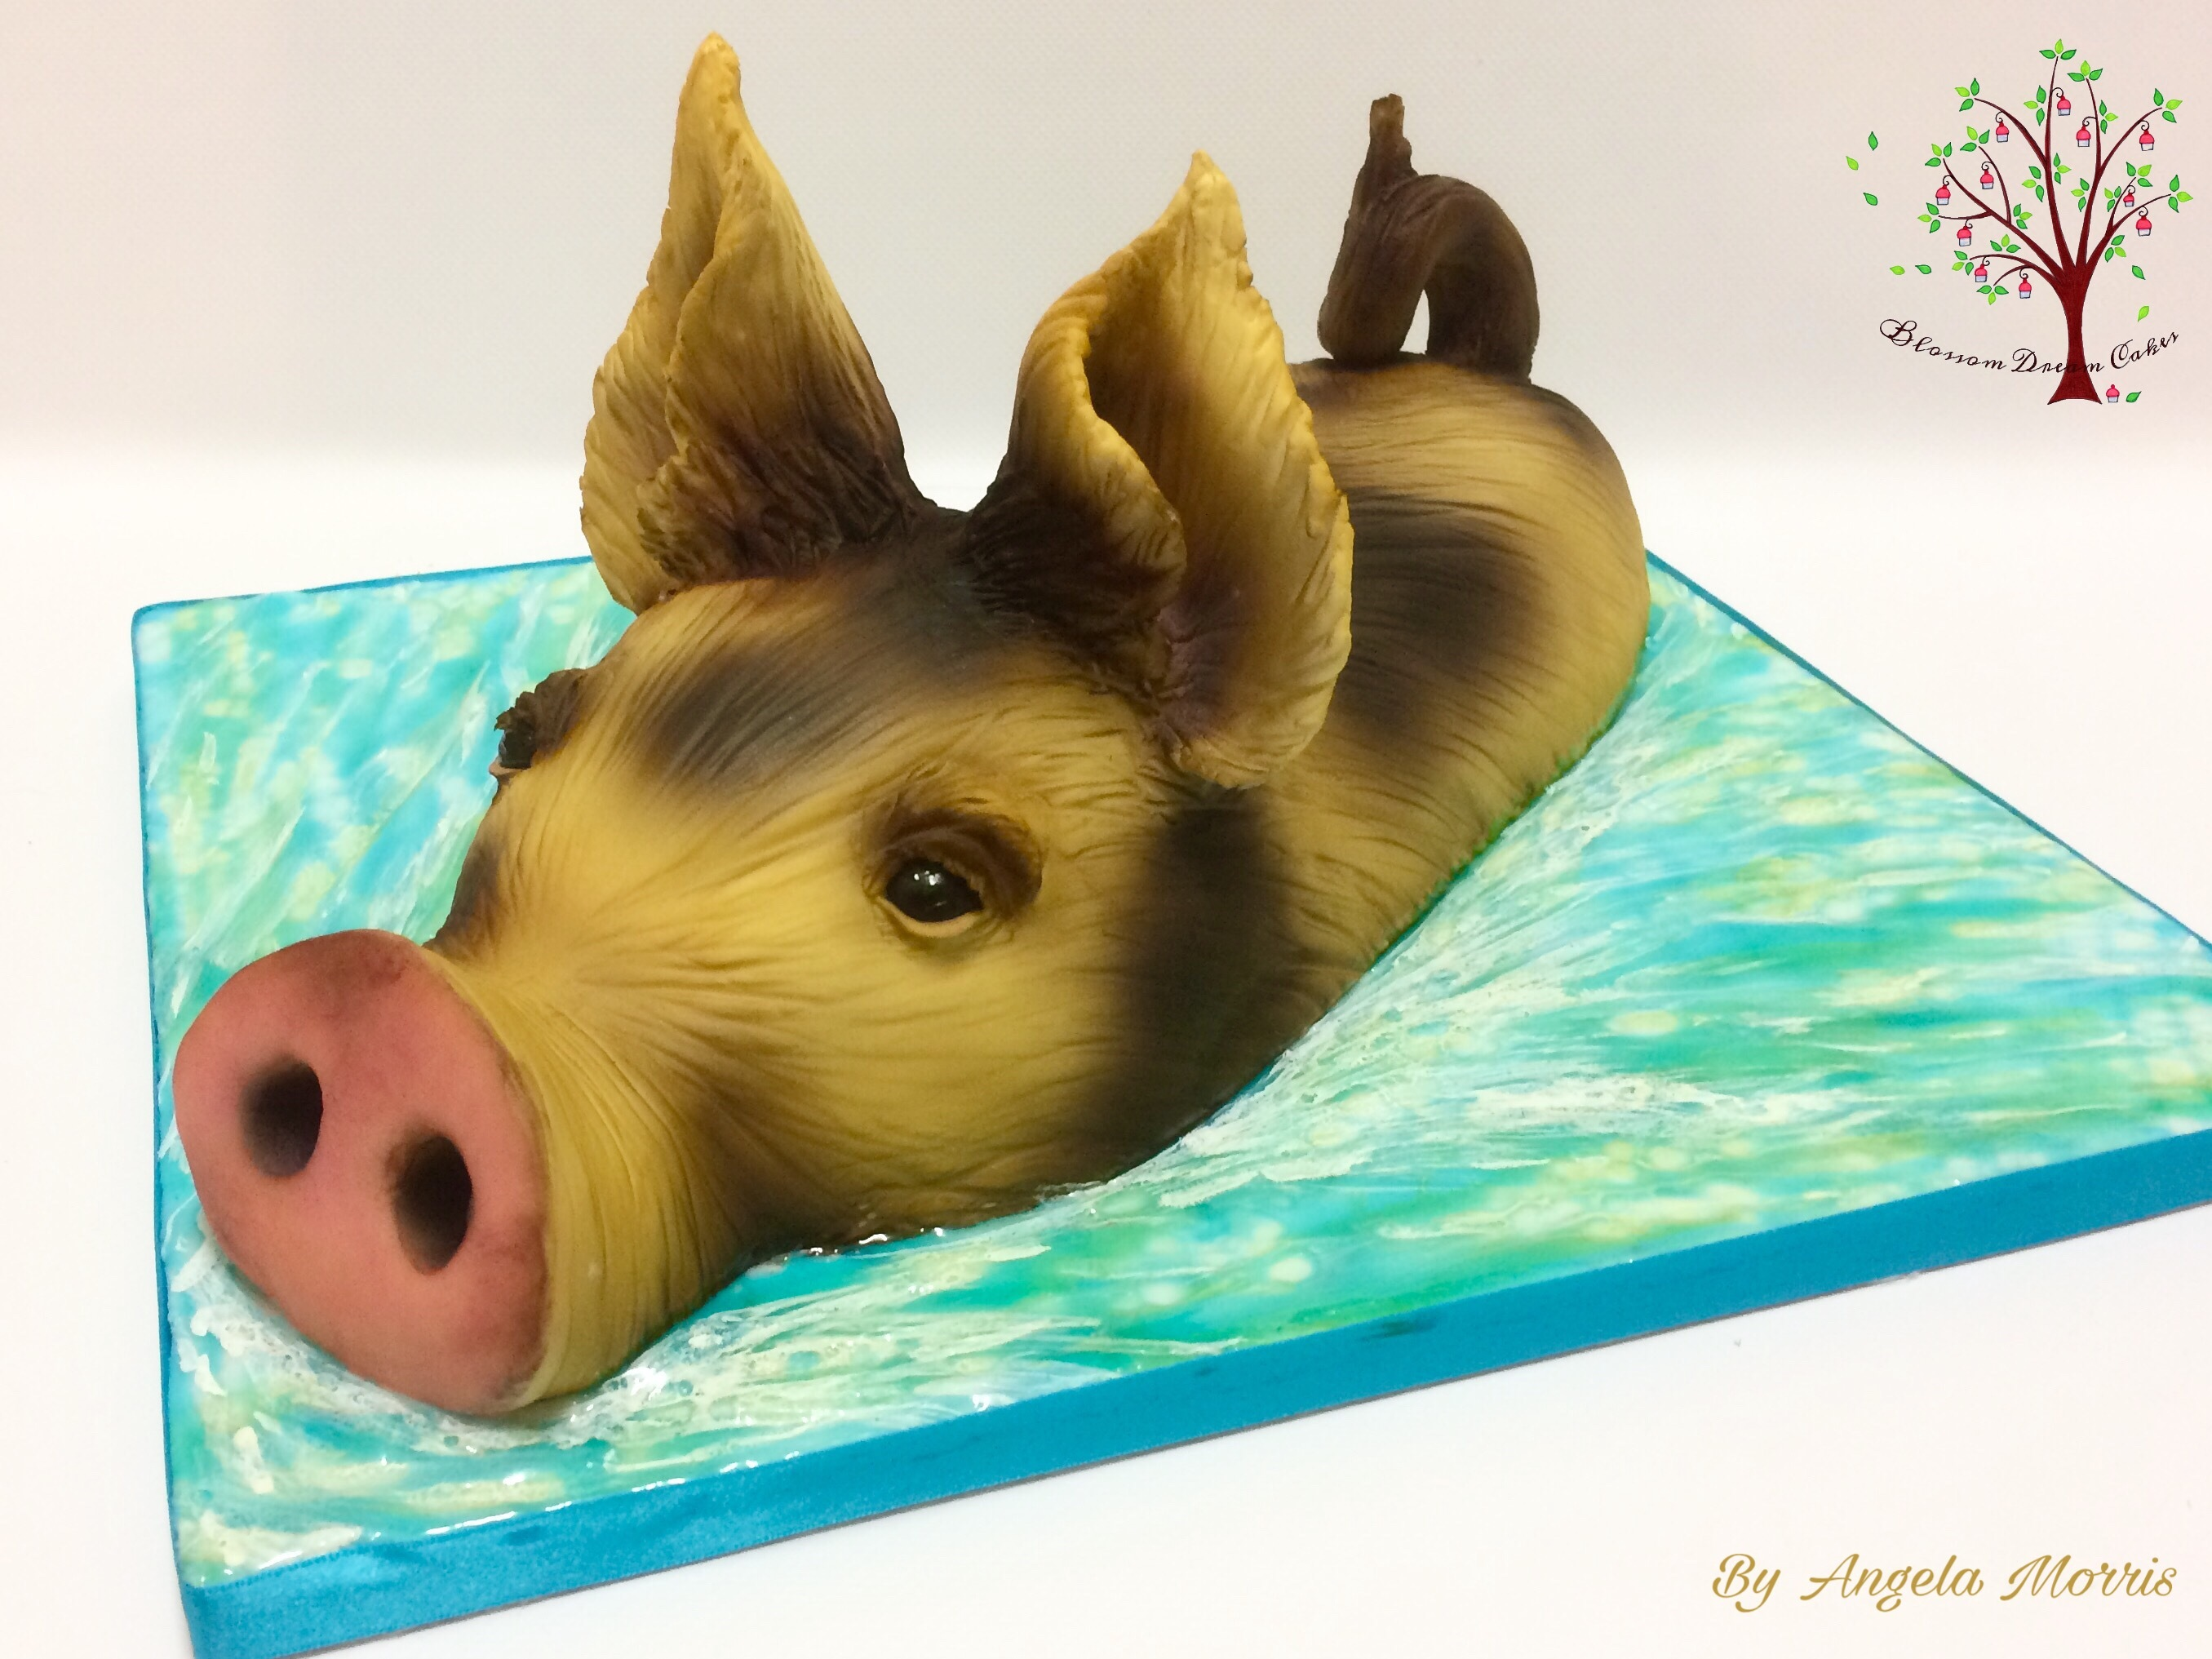 Animal Rights Angela Morris Blossom Dream Cakes Pig